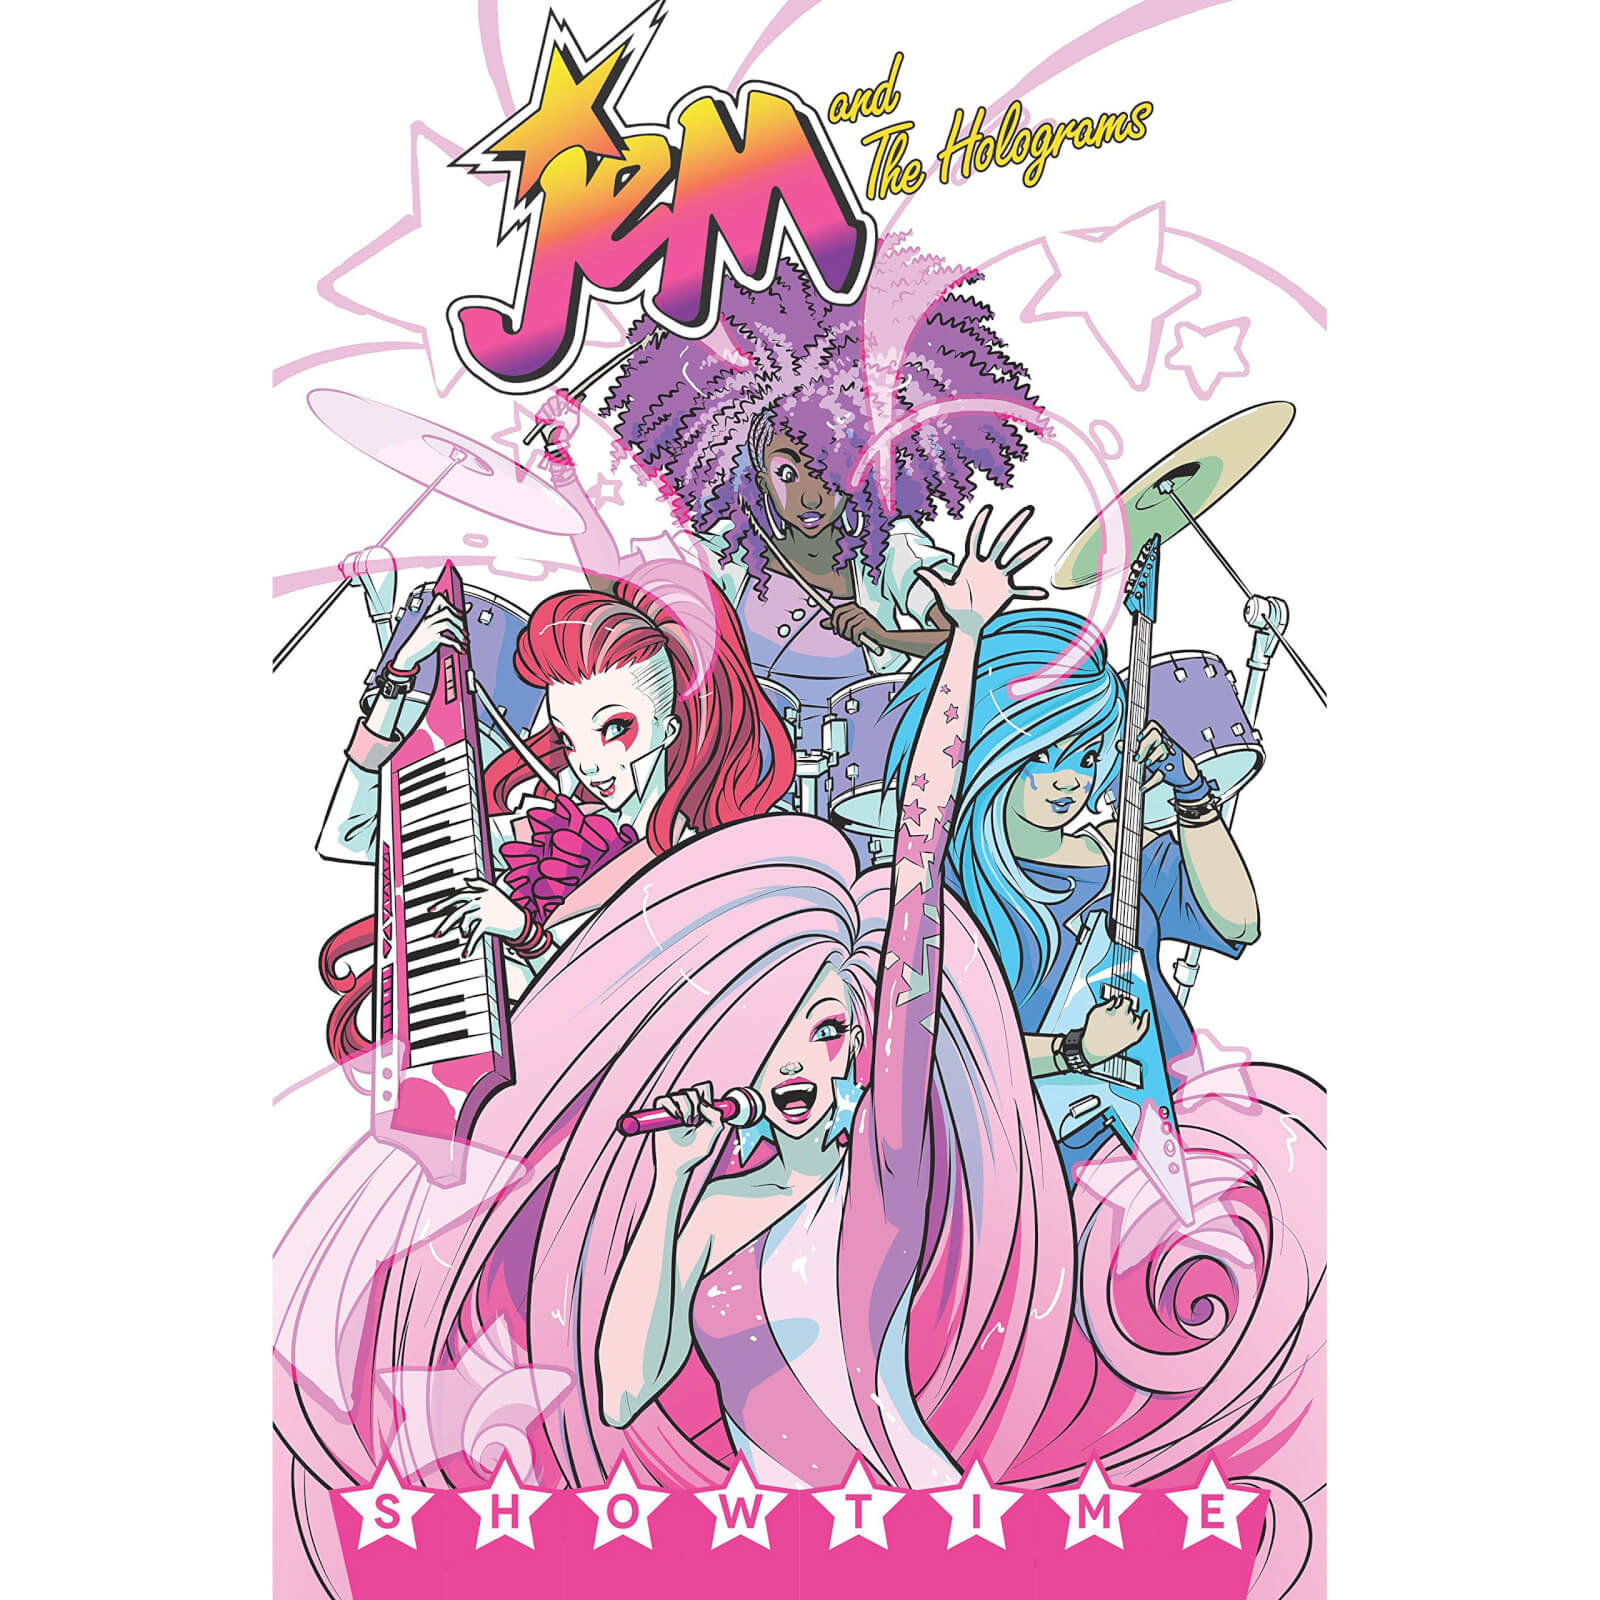 Jem and the Holograms: Showtime - Volume 1 Graphic Novel